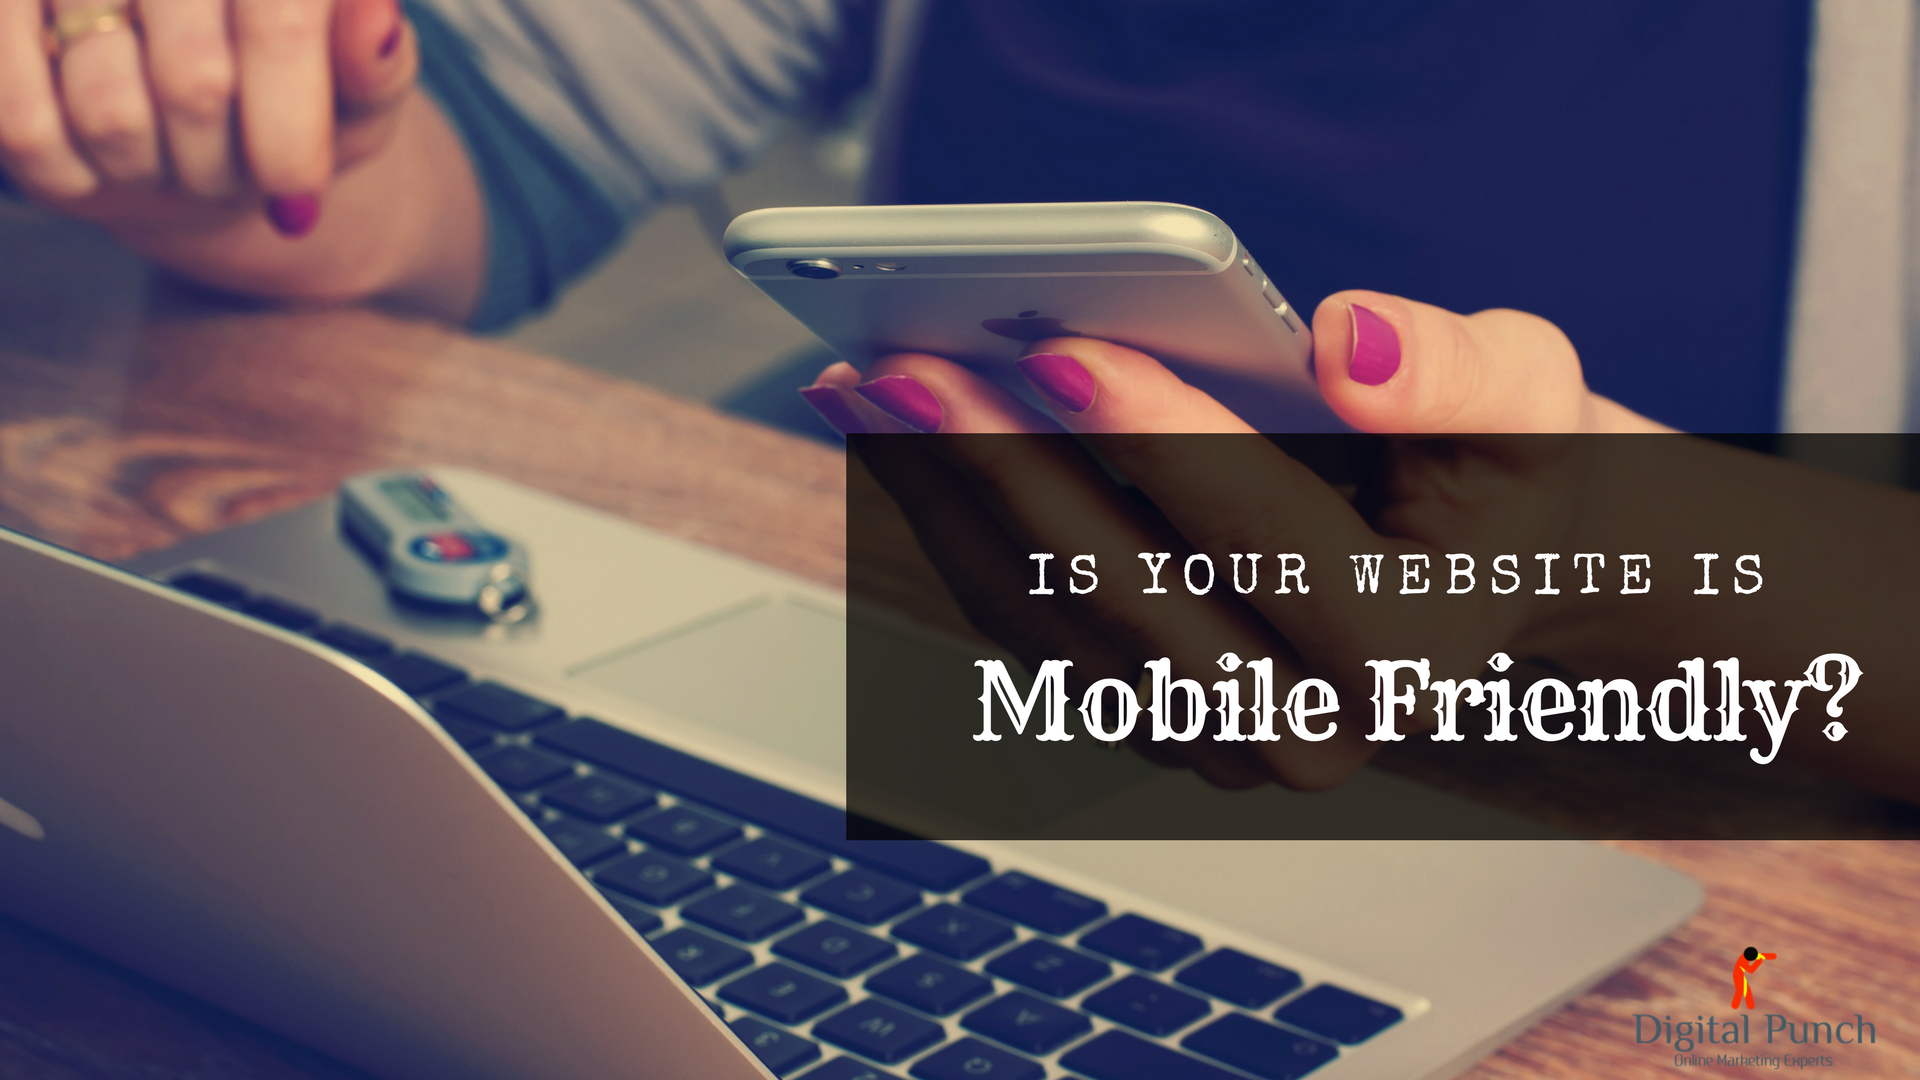 Is your website is mobile friendly? Get a mobile friendly website design - Digital Punch